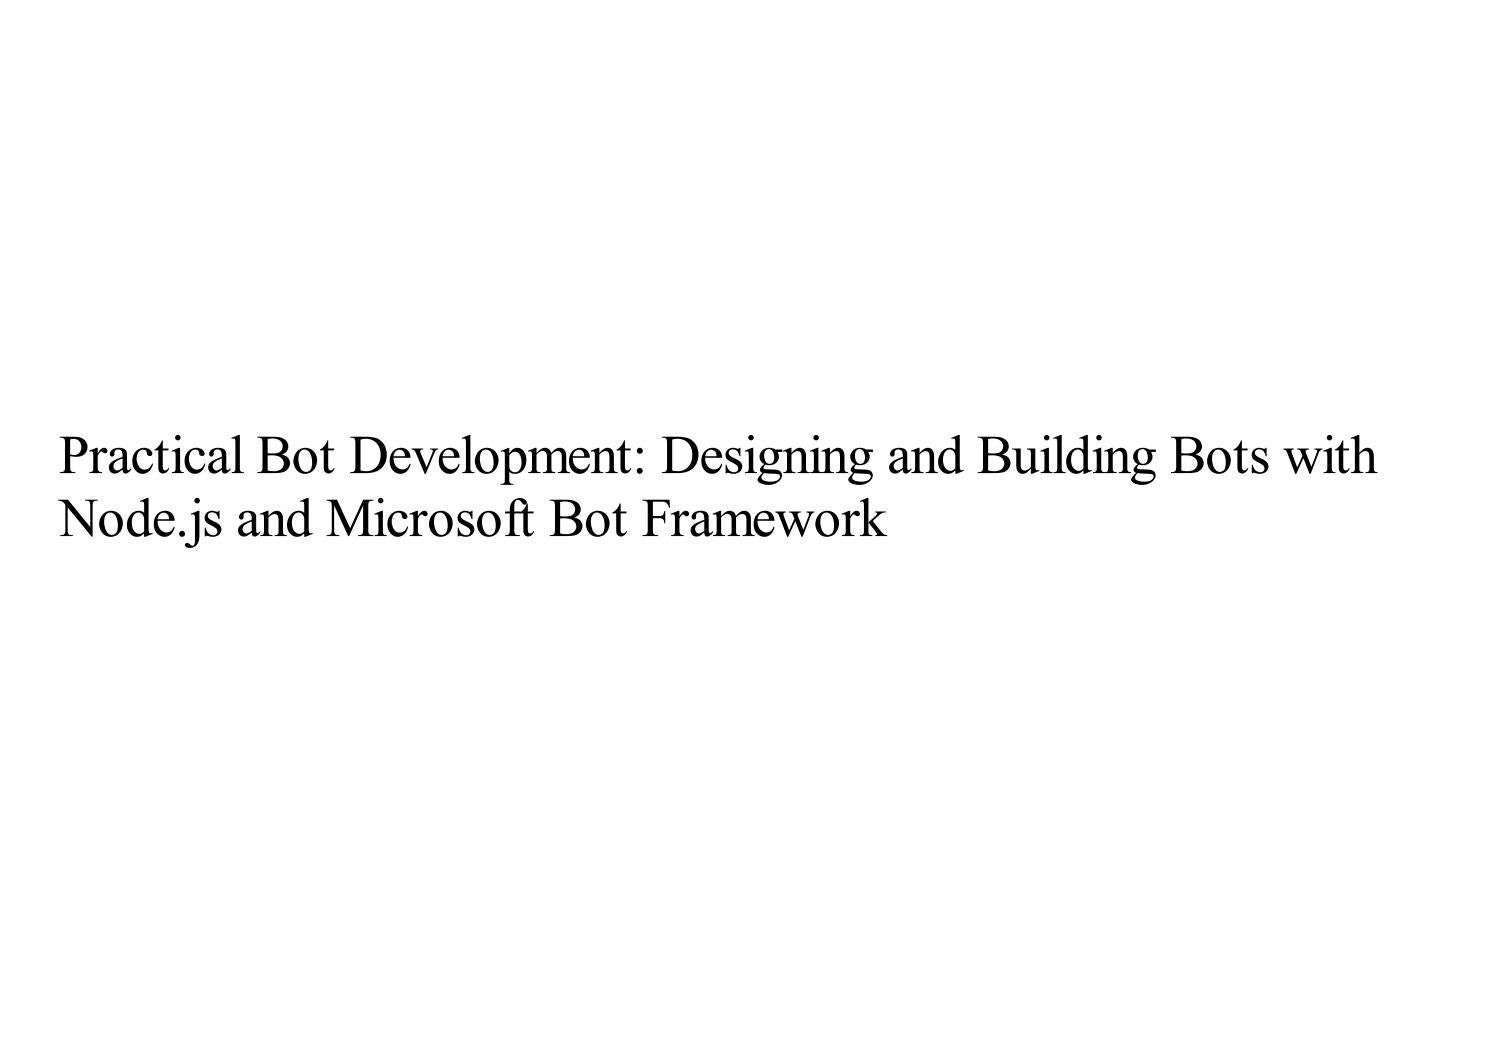 Practical Bot Development: Designing and Building Bots with